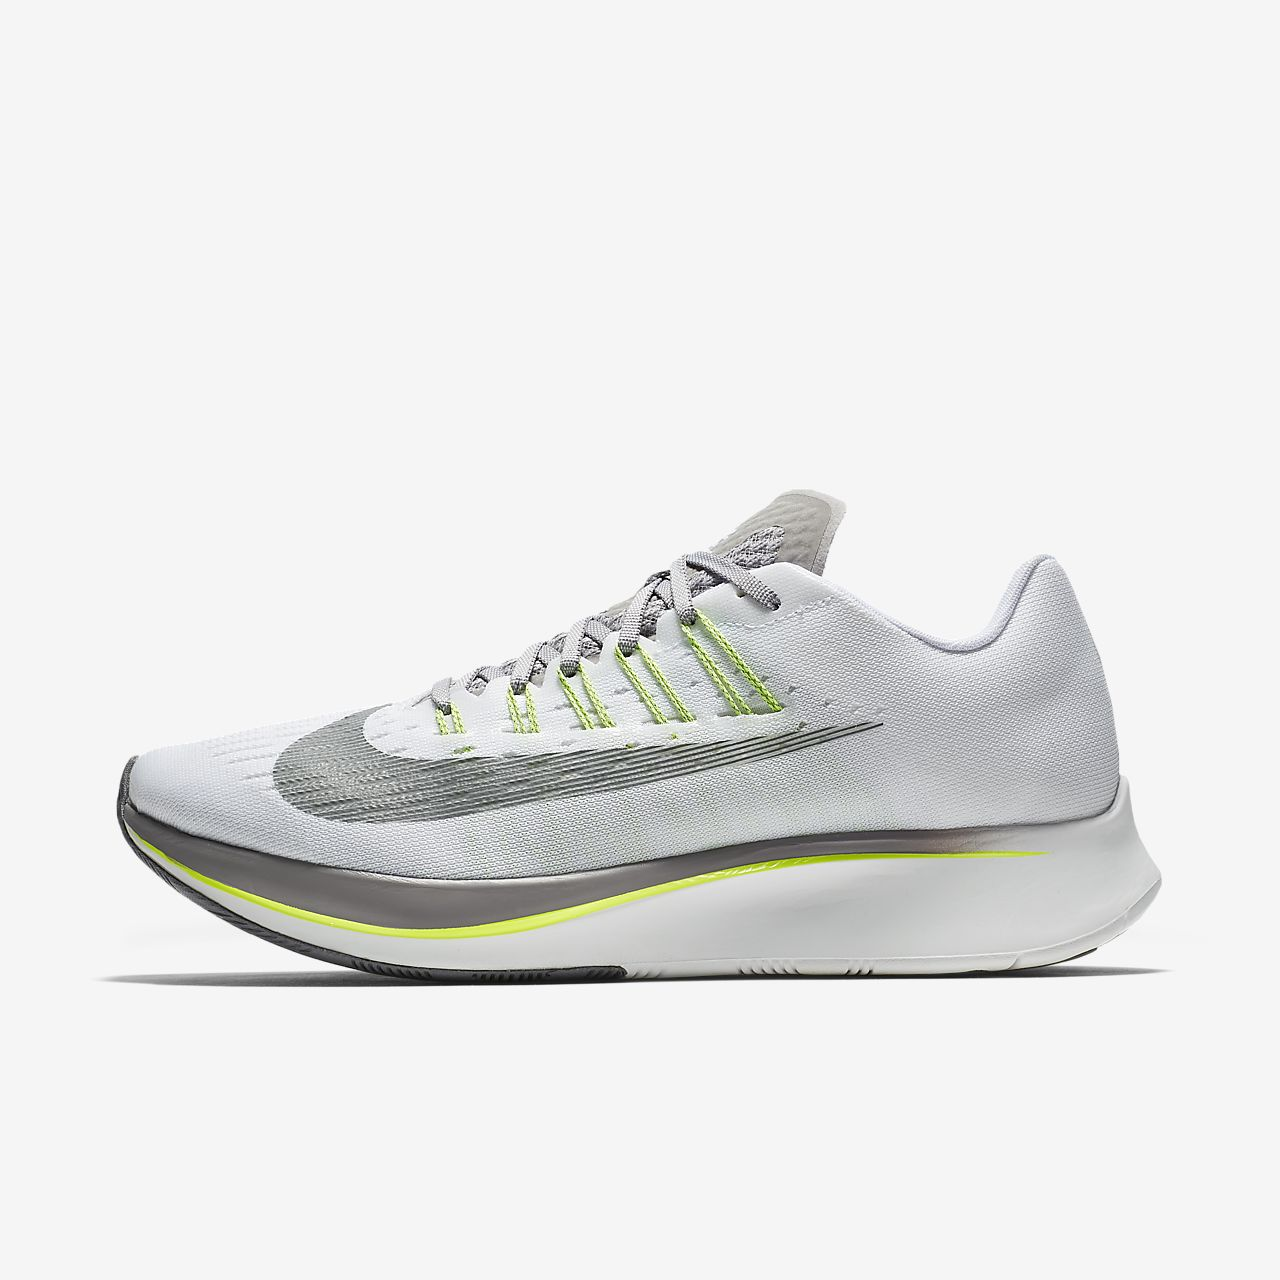 d2b05a89a Nike Zoom Fly Men s Running Shoe. Nike.com